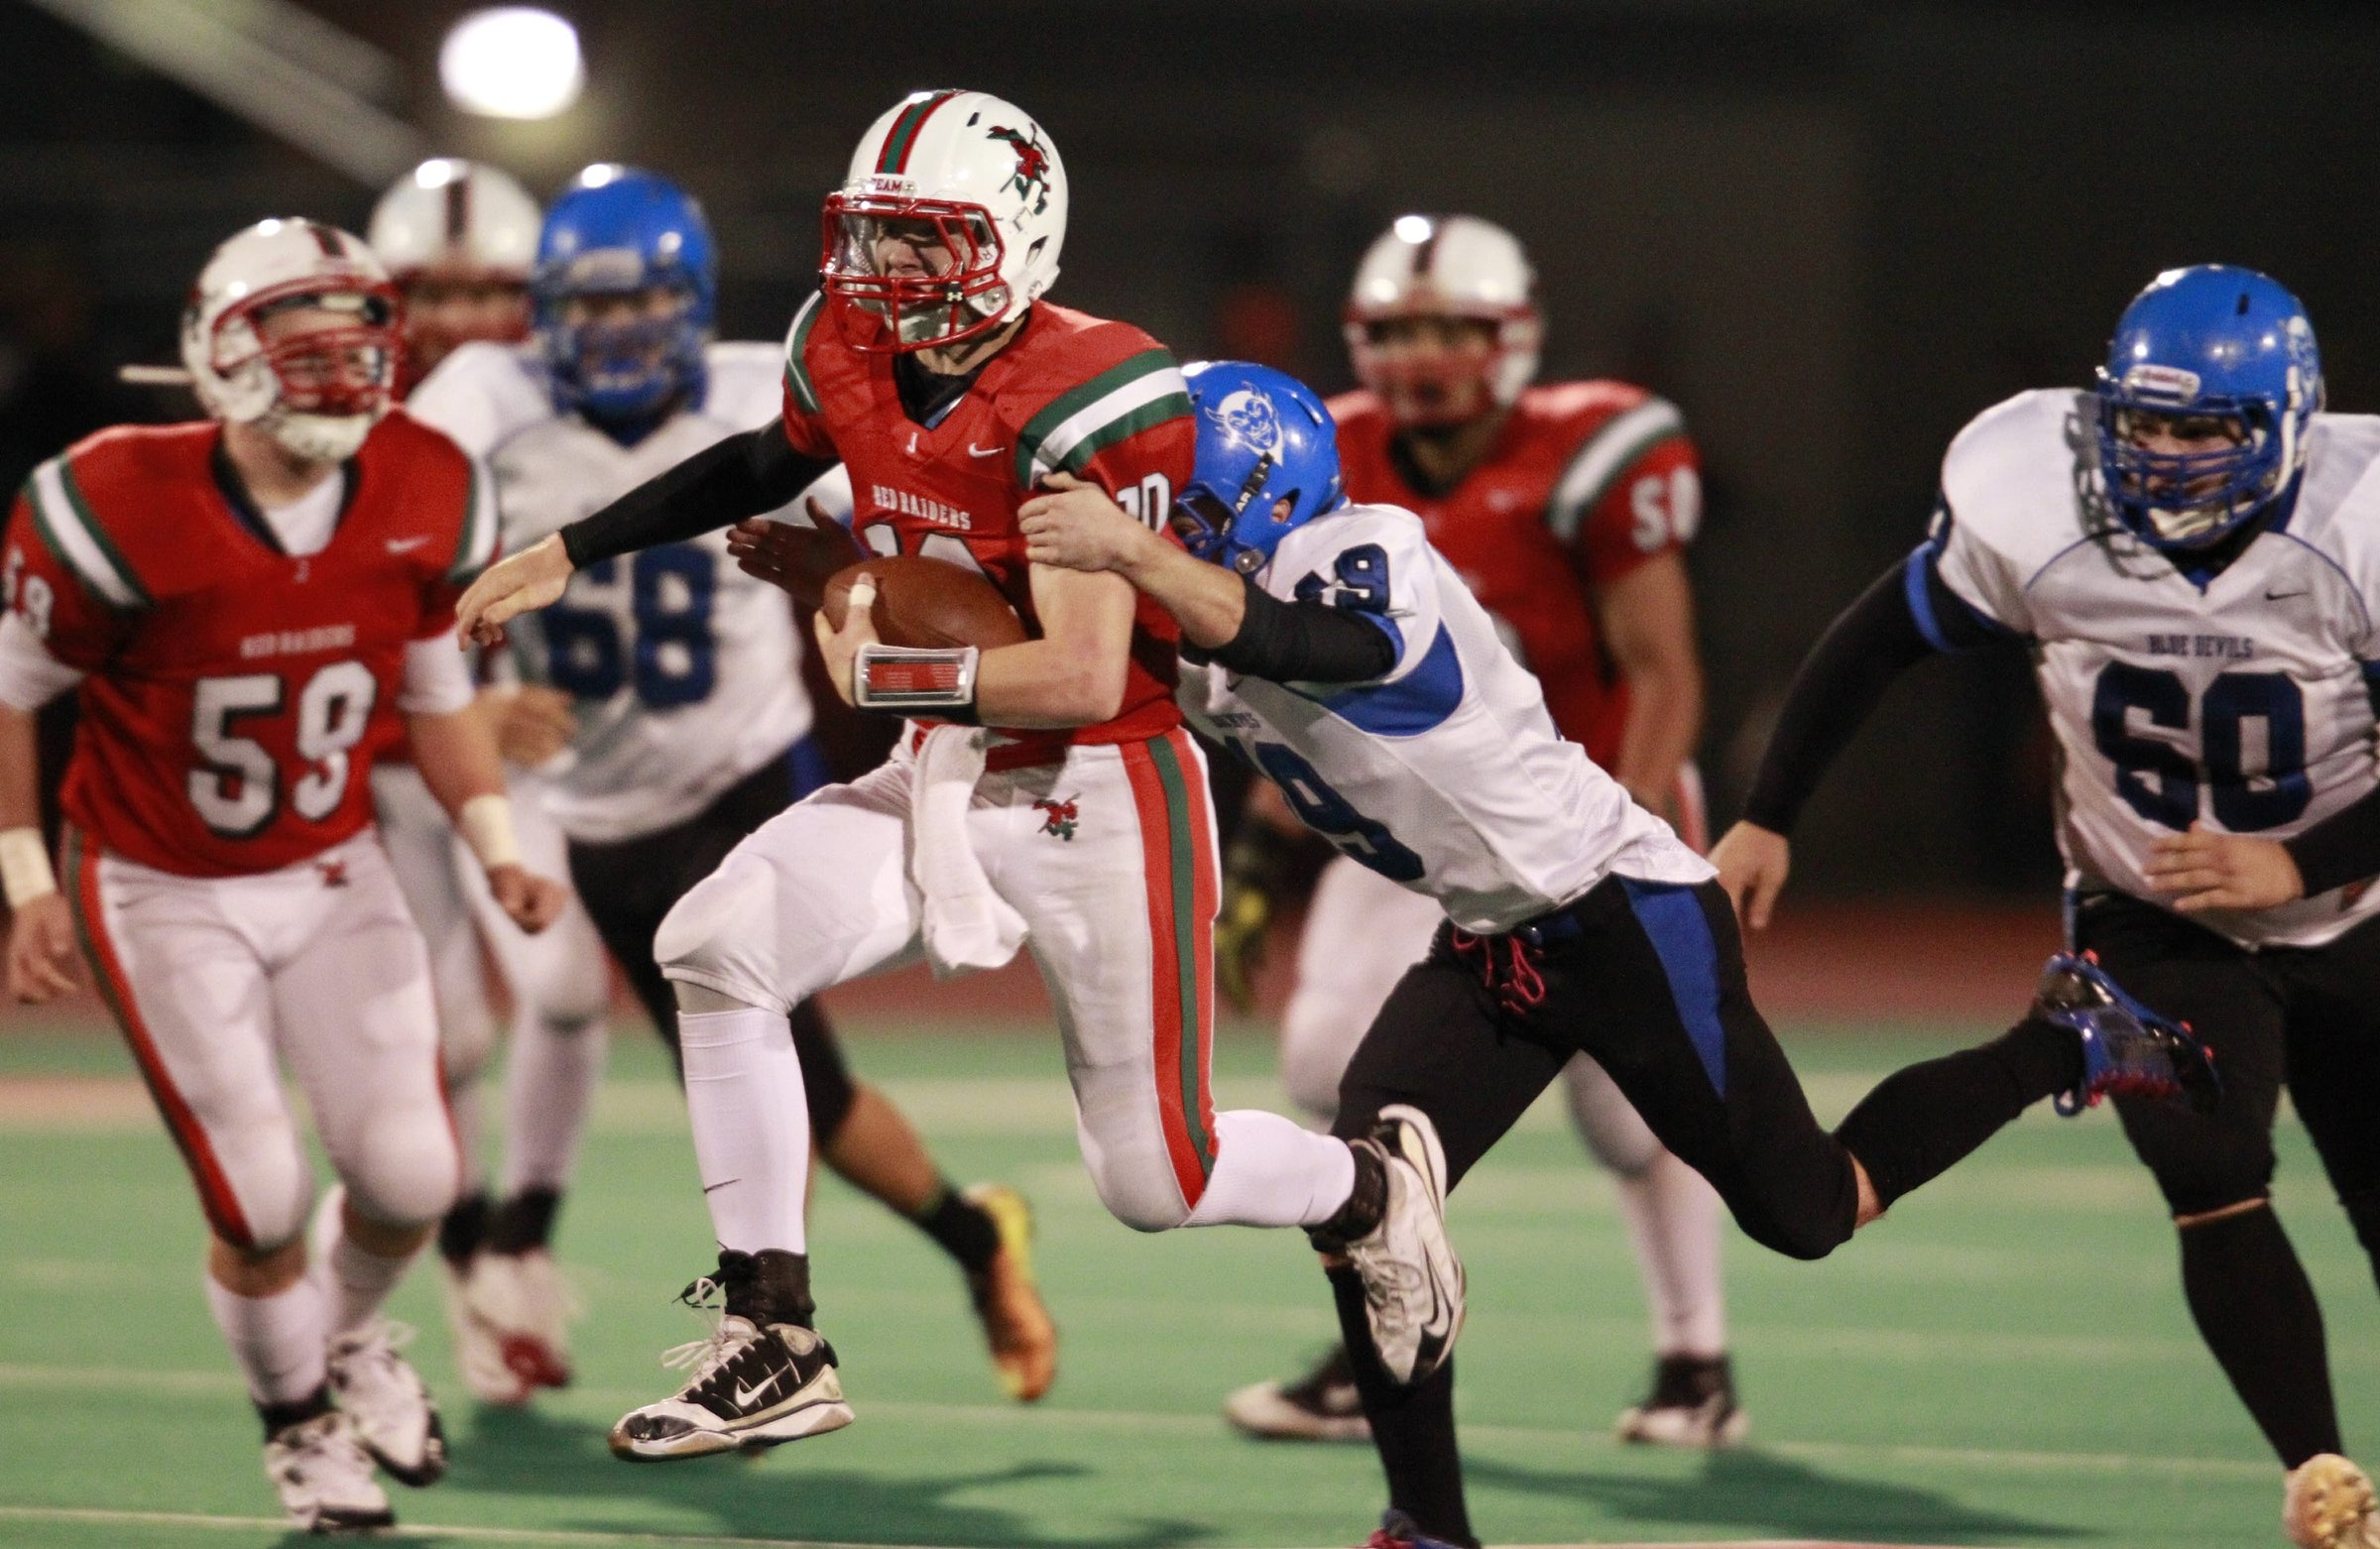 Jamestown quarterback Jake Sisson jumps as he runs against Kenmore West on Friday night during the Red Raiders' rout.